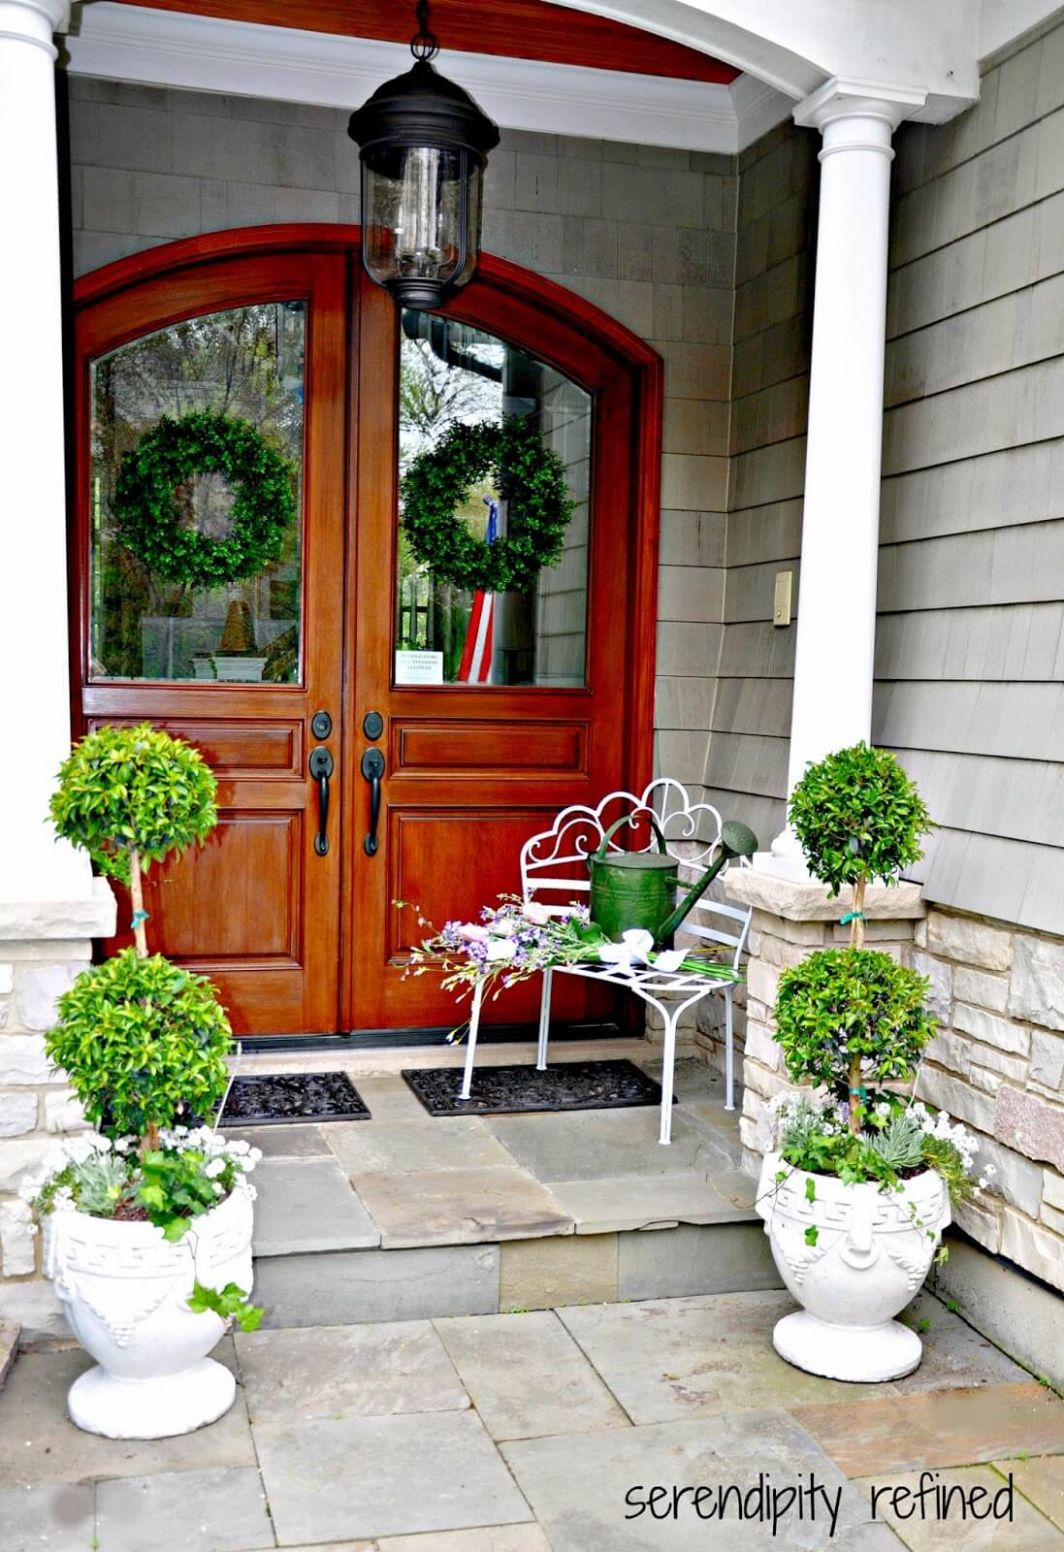 9+ Best Porch Planter Ideas and Designs for 9 - front porch planter ideas